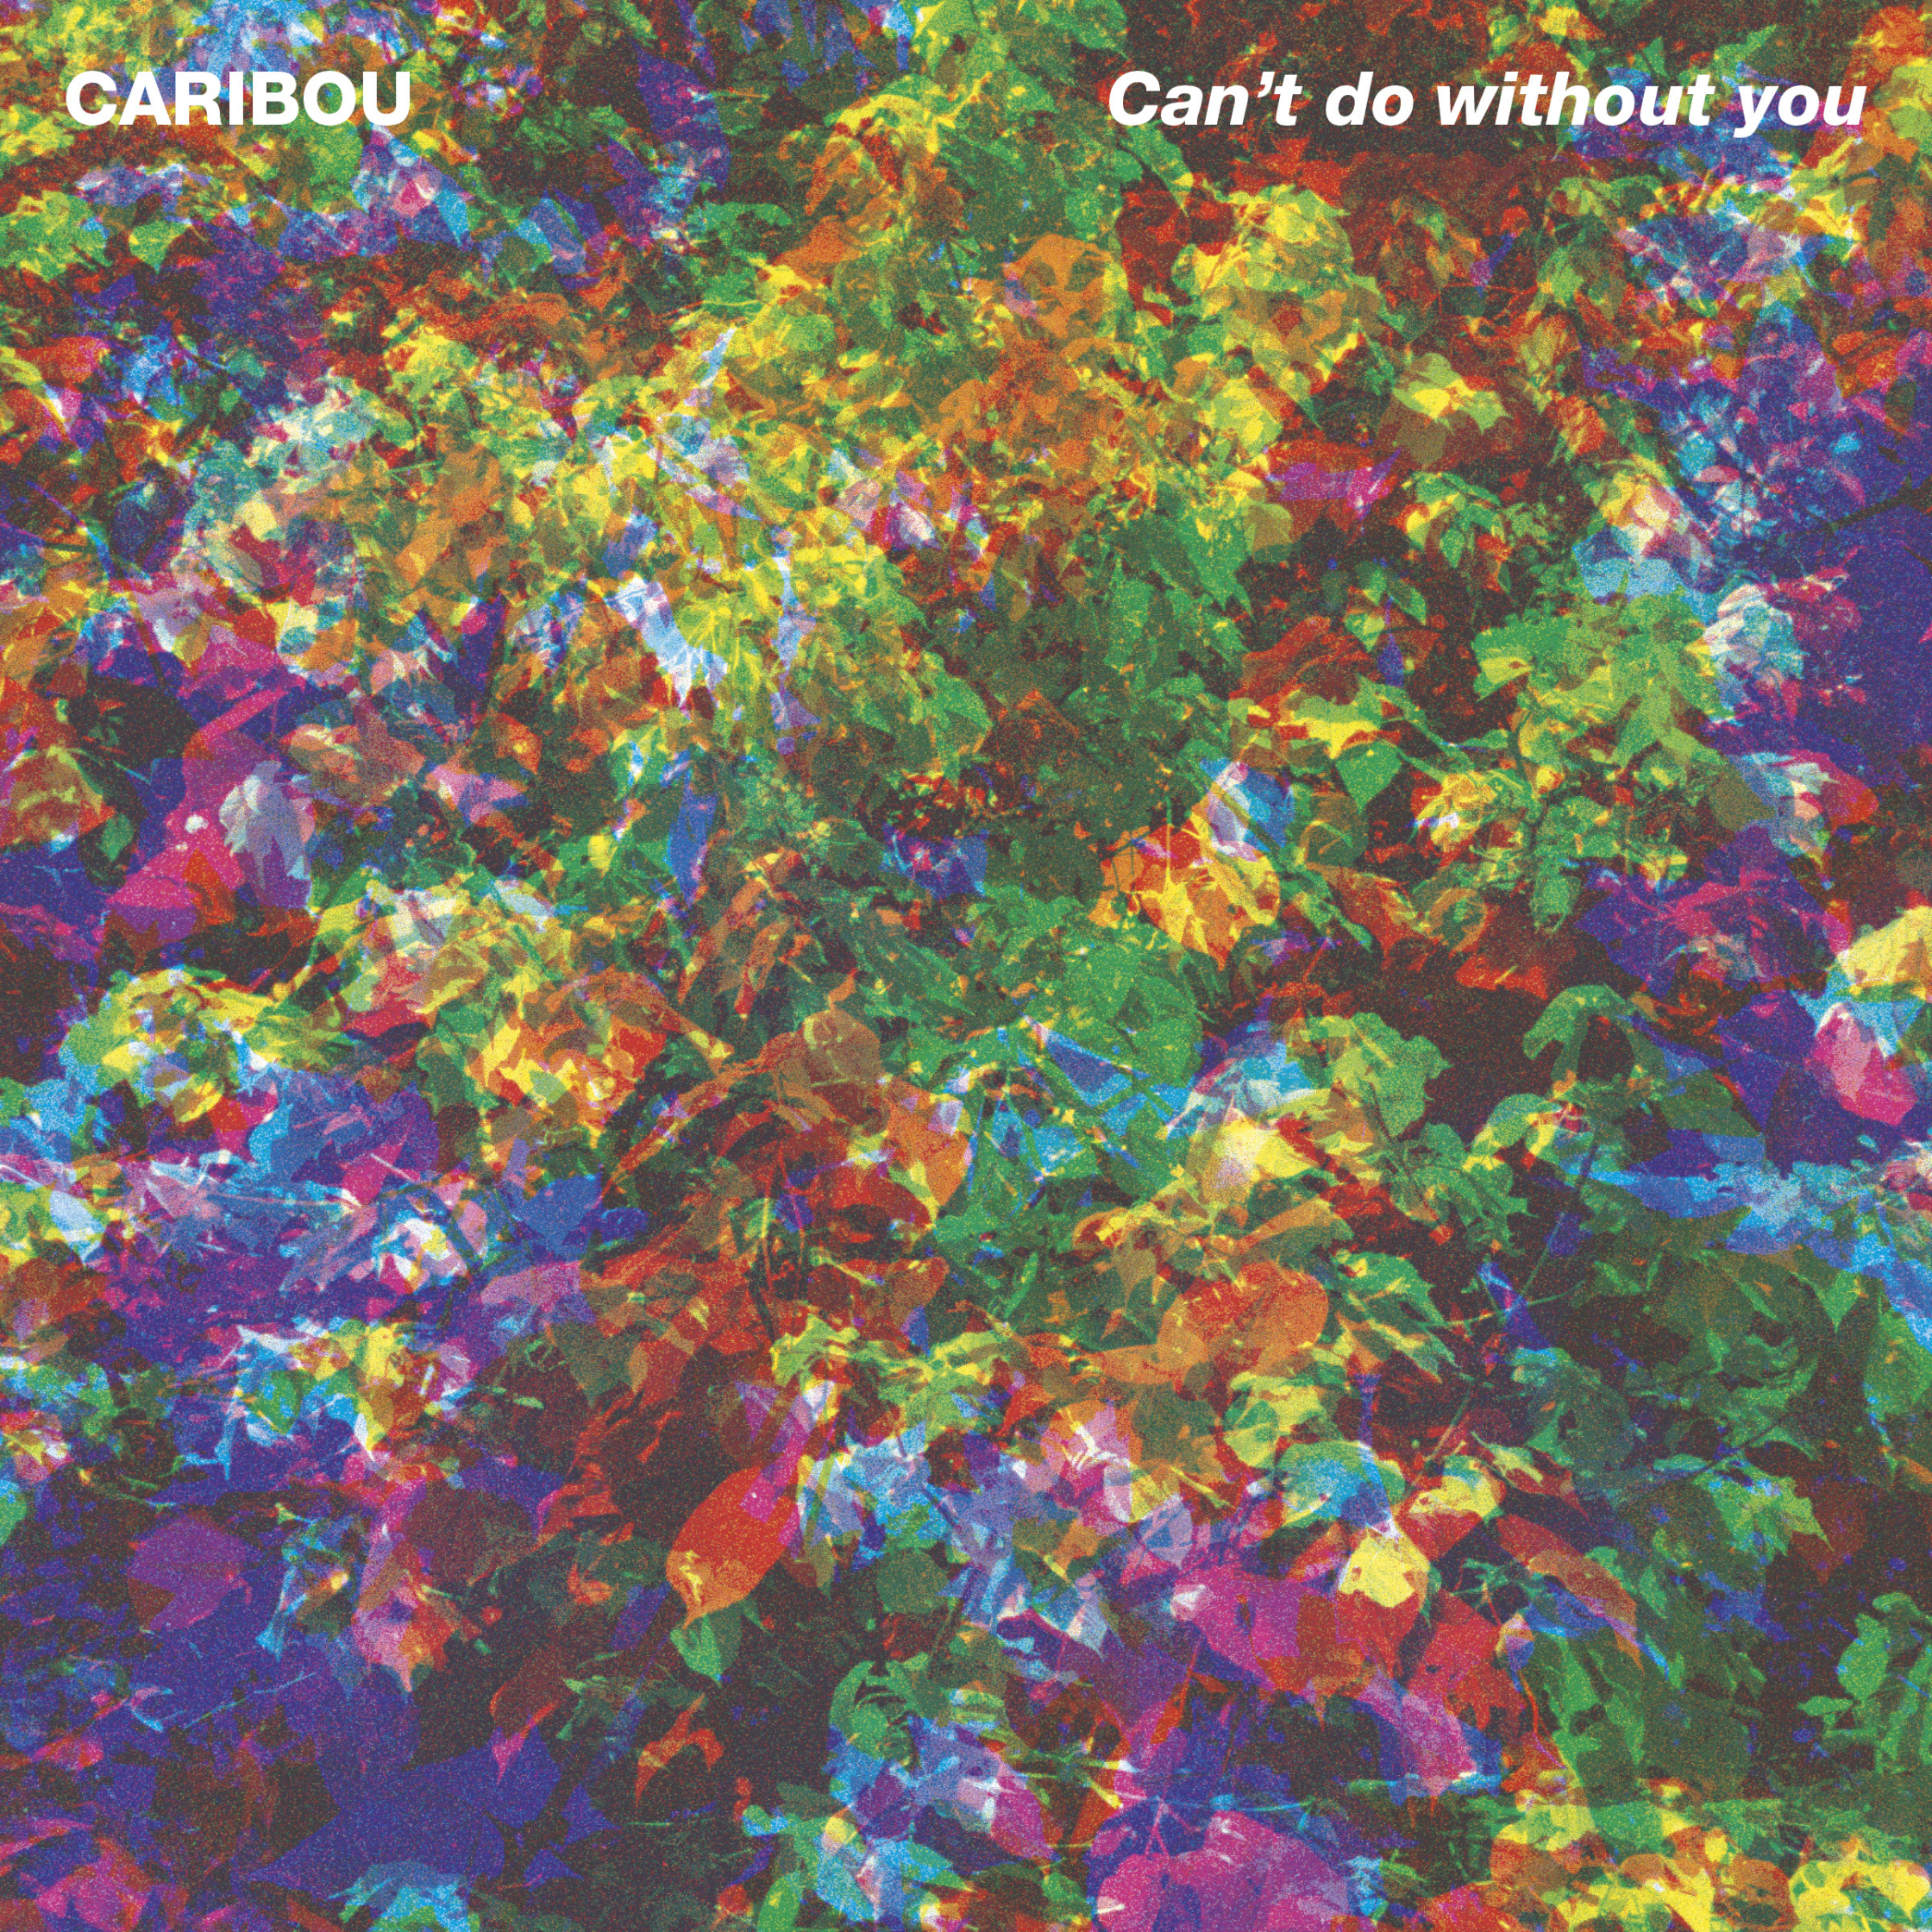 Can't Do Without You / Caribou